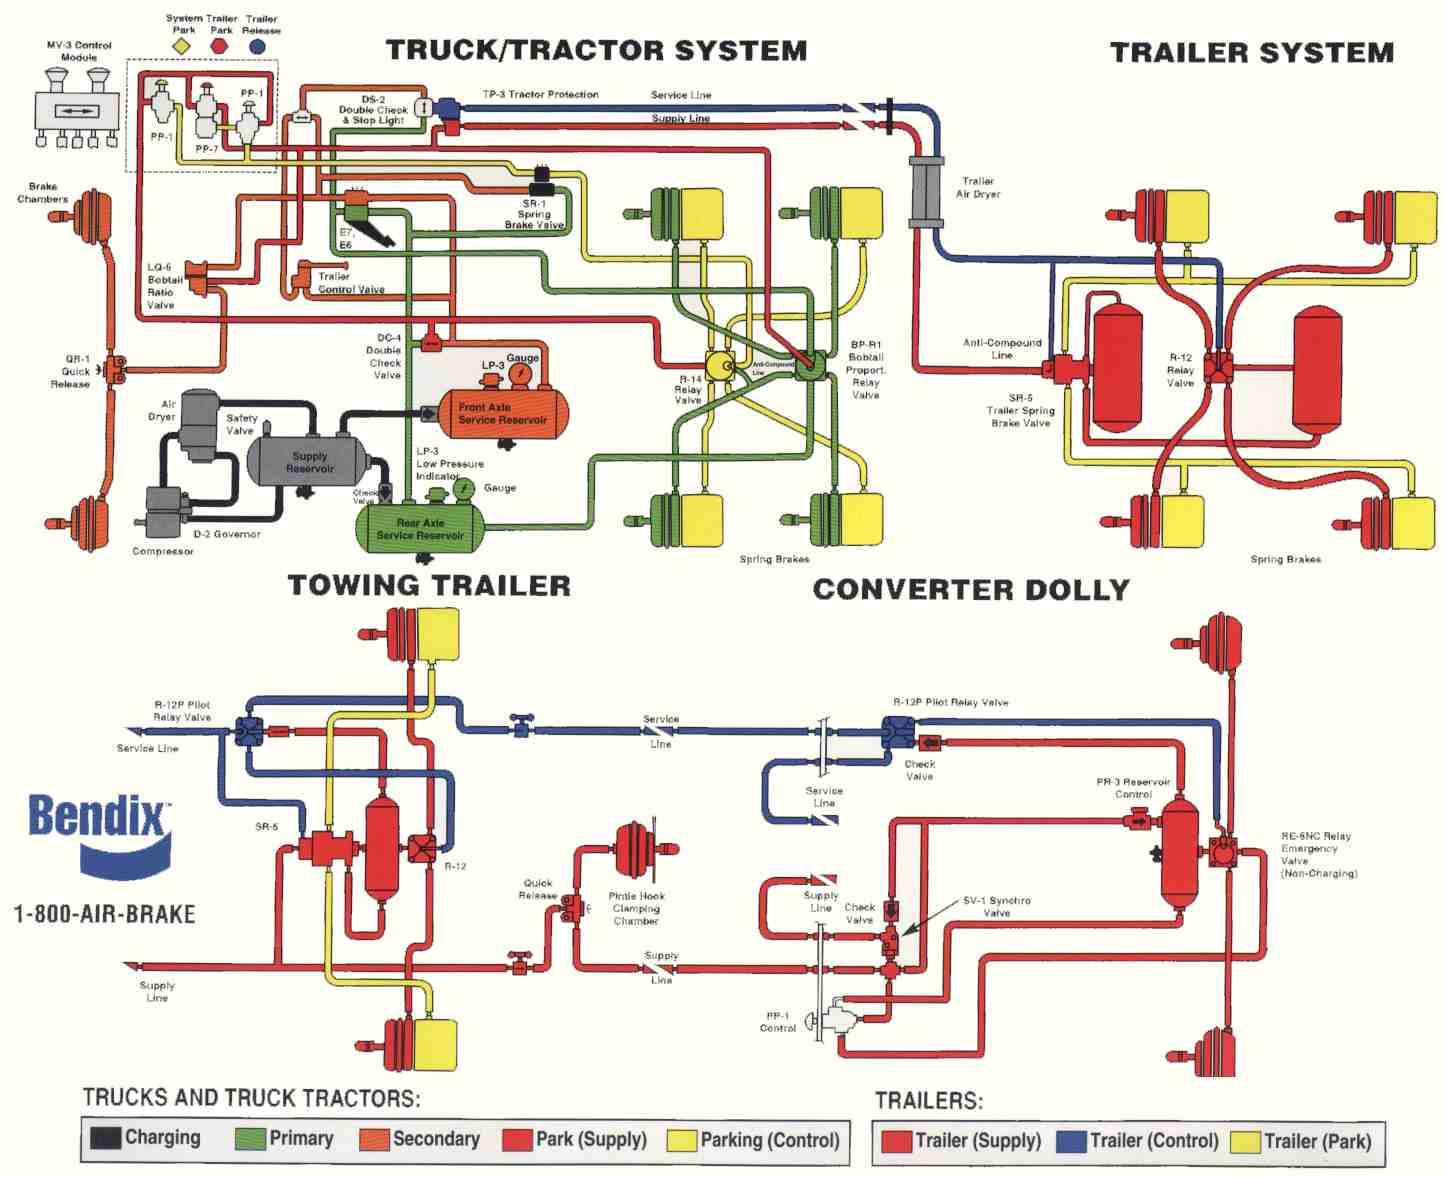 Freightliner Air System Diagram - wiring diagram on the net on 2007 freightliner columbia plug diagrams, 2007 freightliner chassis diagram, 2007 freightliner fuel tank, 2007 freightliner air brake diagram, 2007 freightliner tractor, 2007 freightliner brake system, 2007 freightliner truck flywheel diagram, 2007 freightliner columbia fuse box, 2007 freightliner wiper motor, freightliner engine diagram, freightliner transmission diagram, freightliner columbia fuse panel diagram, 2007 freightliner engine,